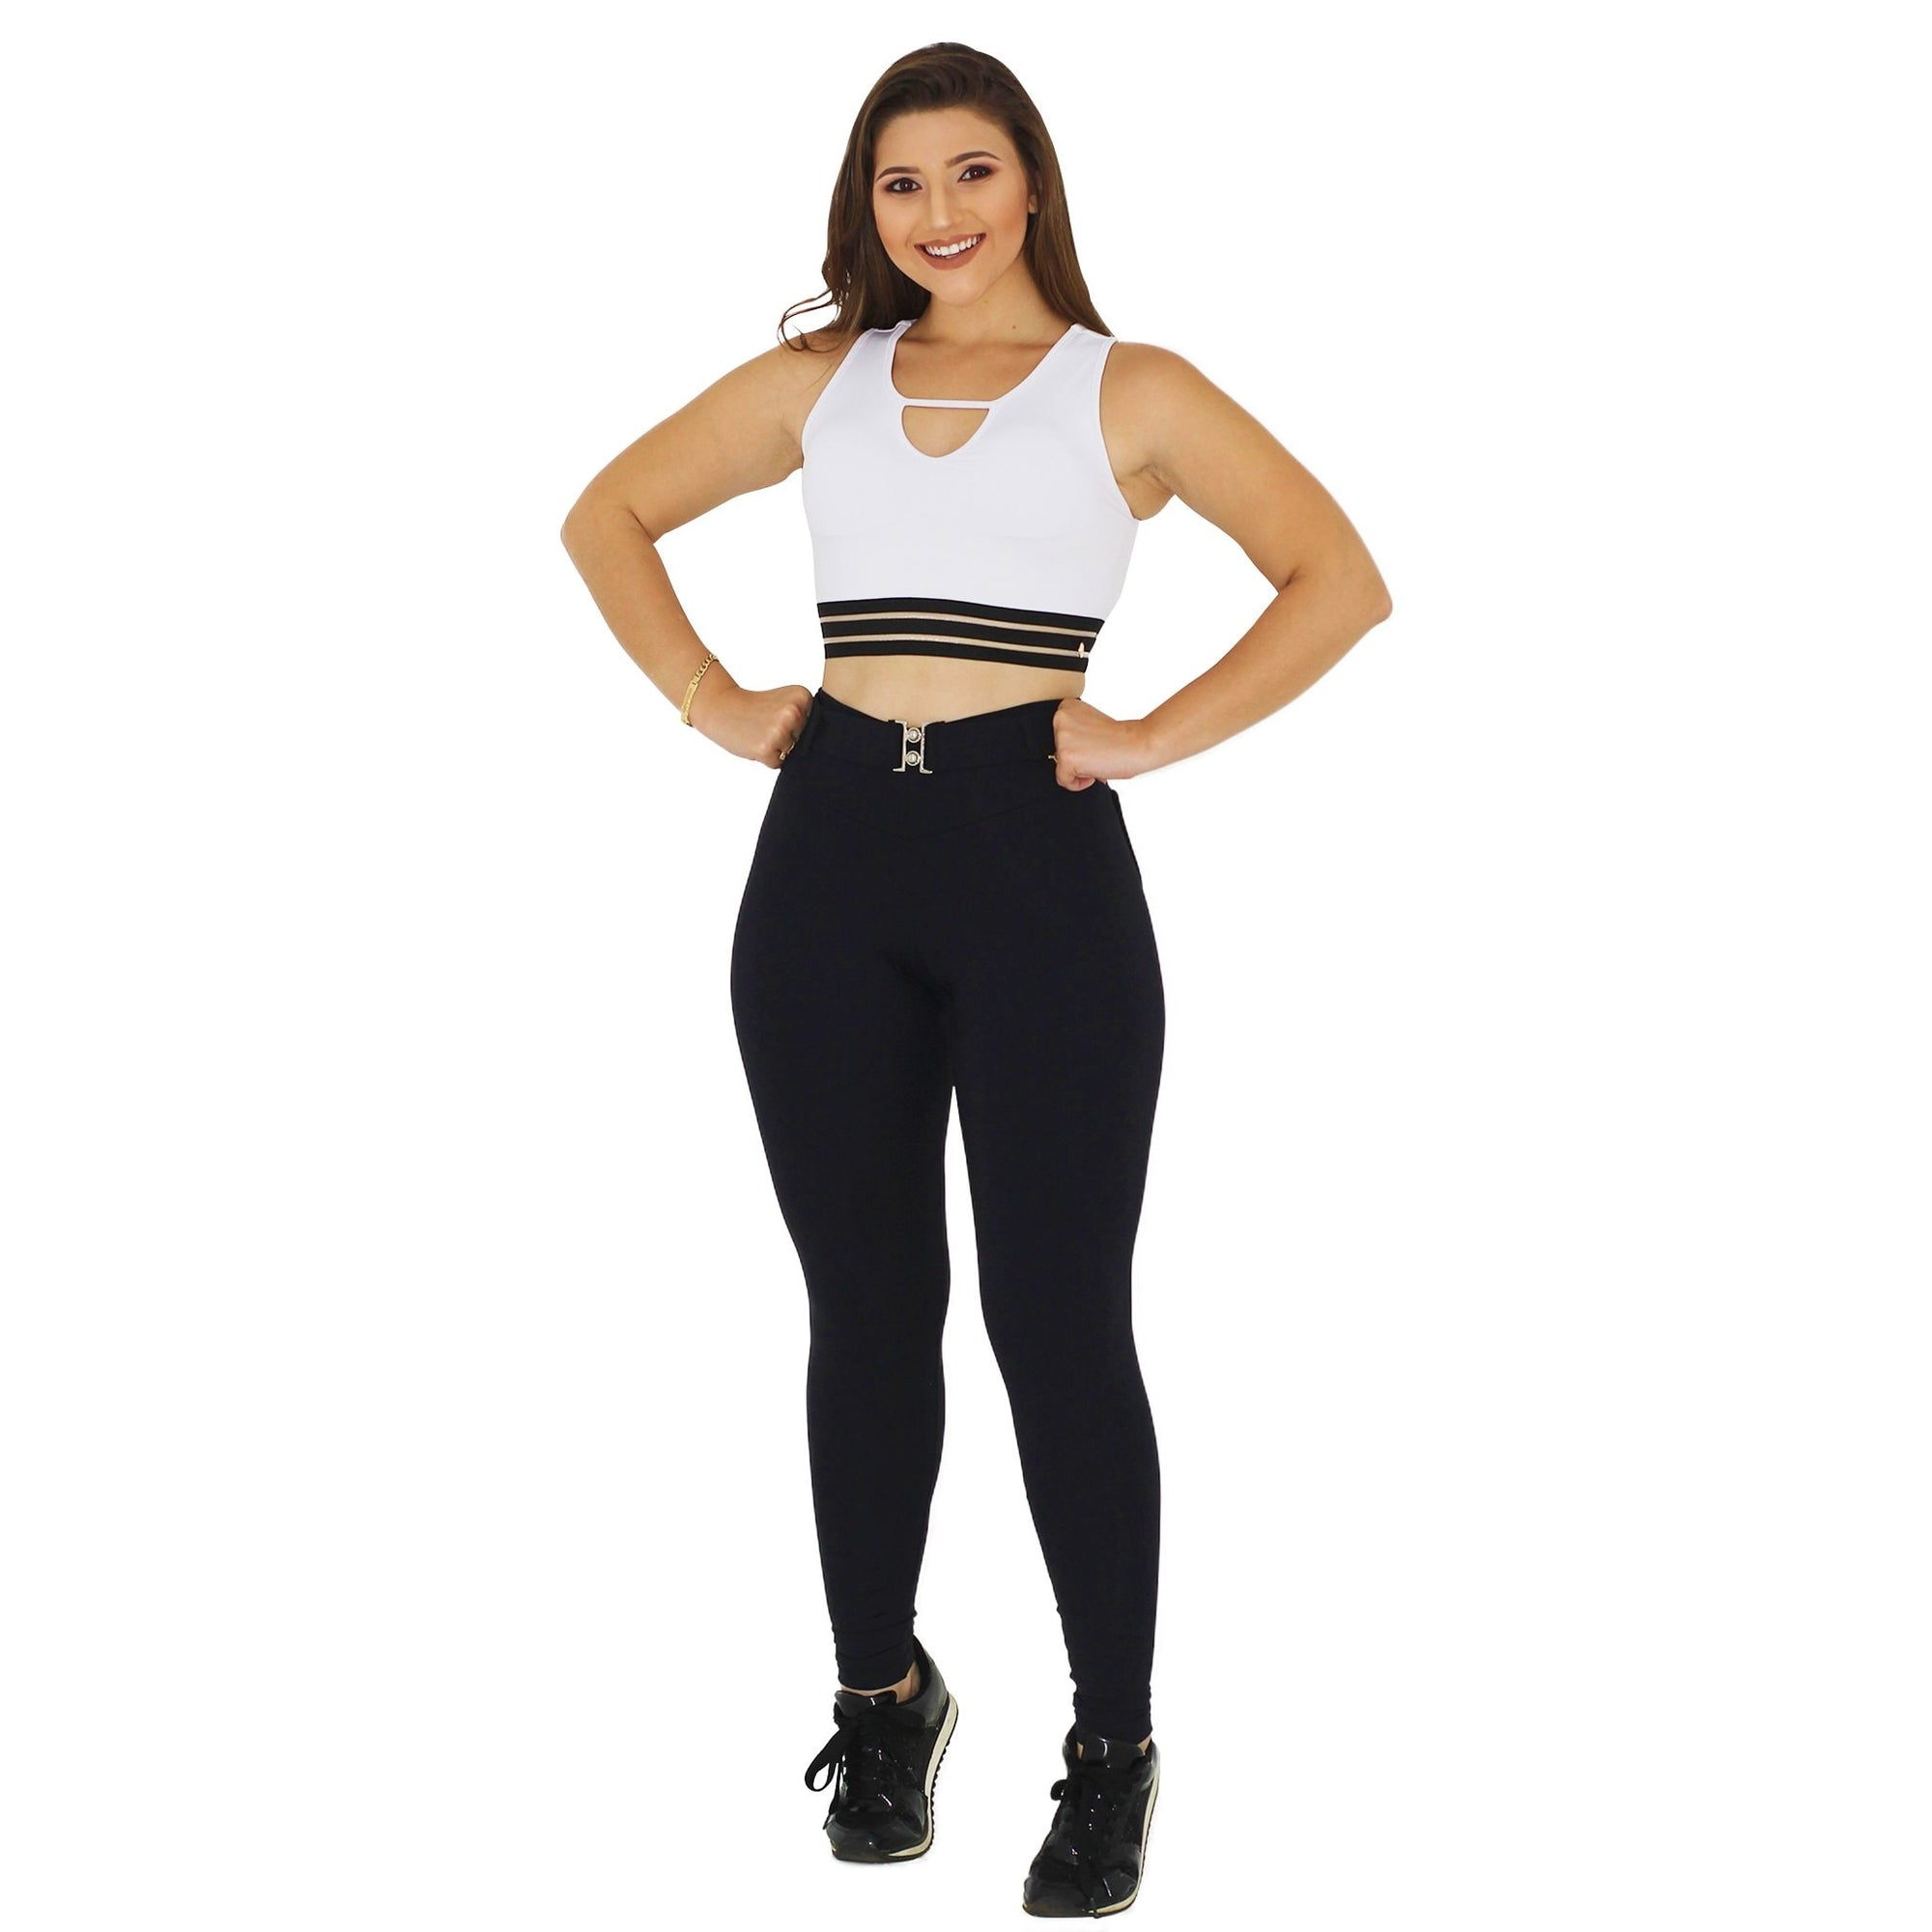 High Power Cropped Top